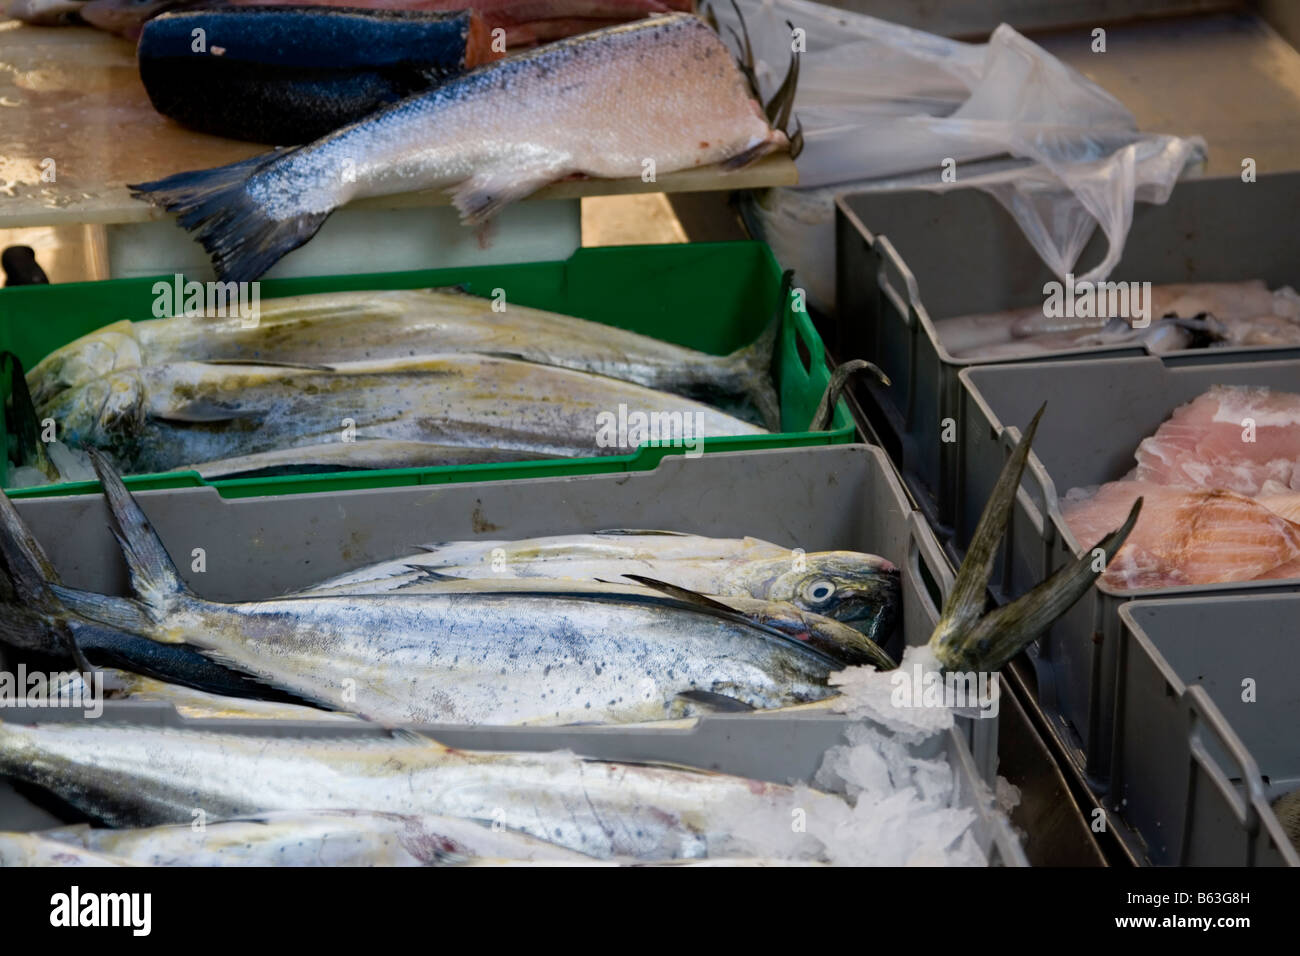 dolphin fish in a crate at a fishstall in the open air food market